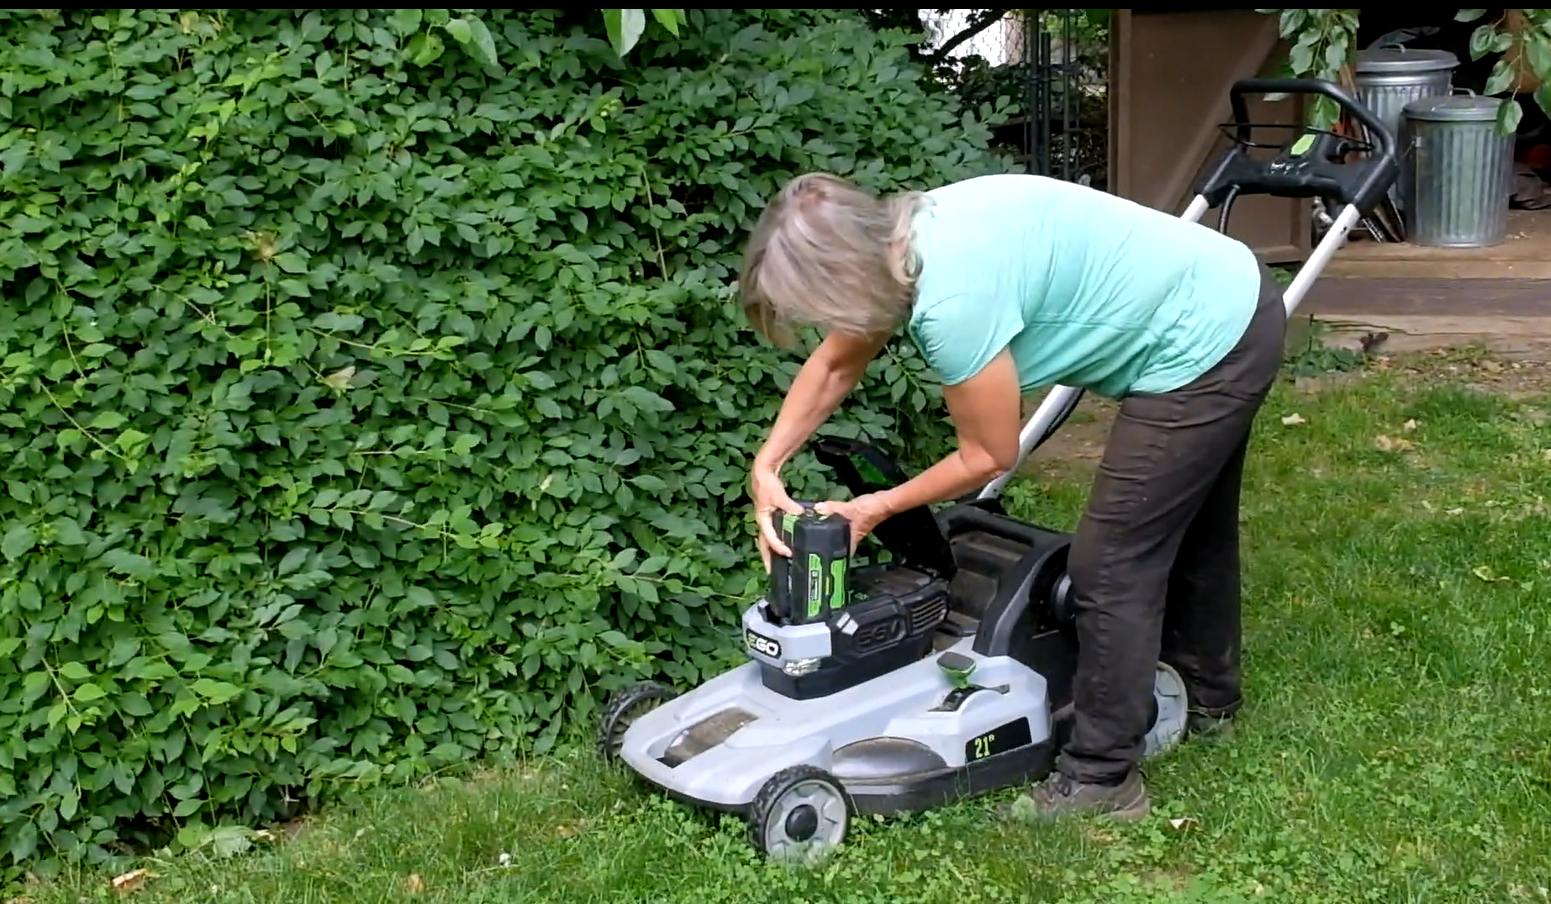 The Pros of Electric Lawn Equipment